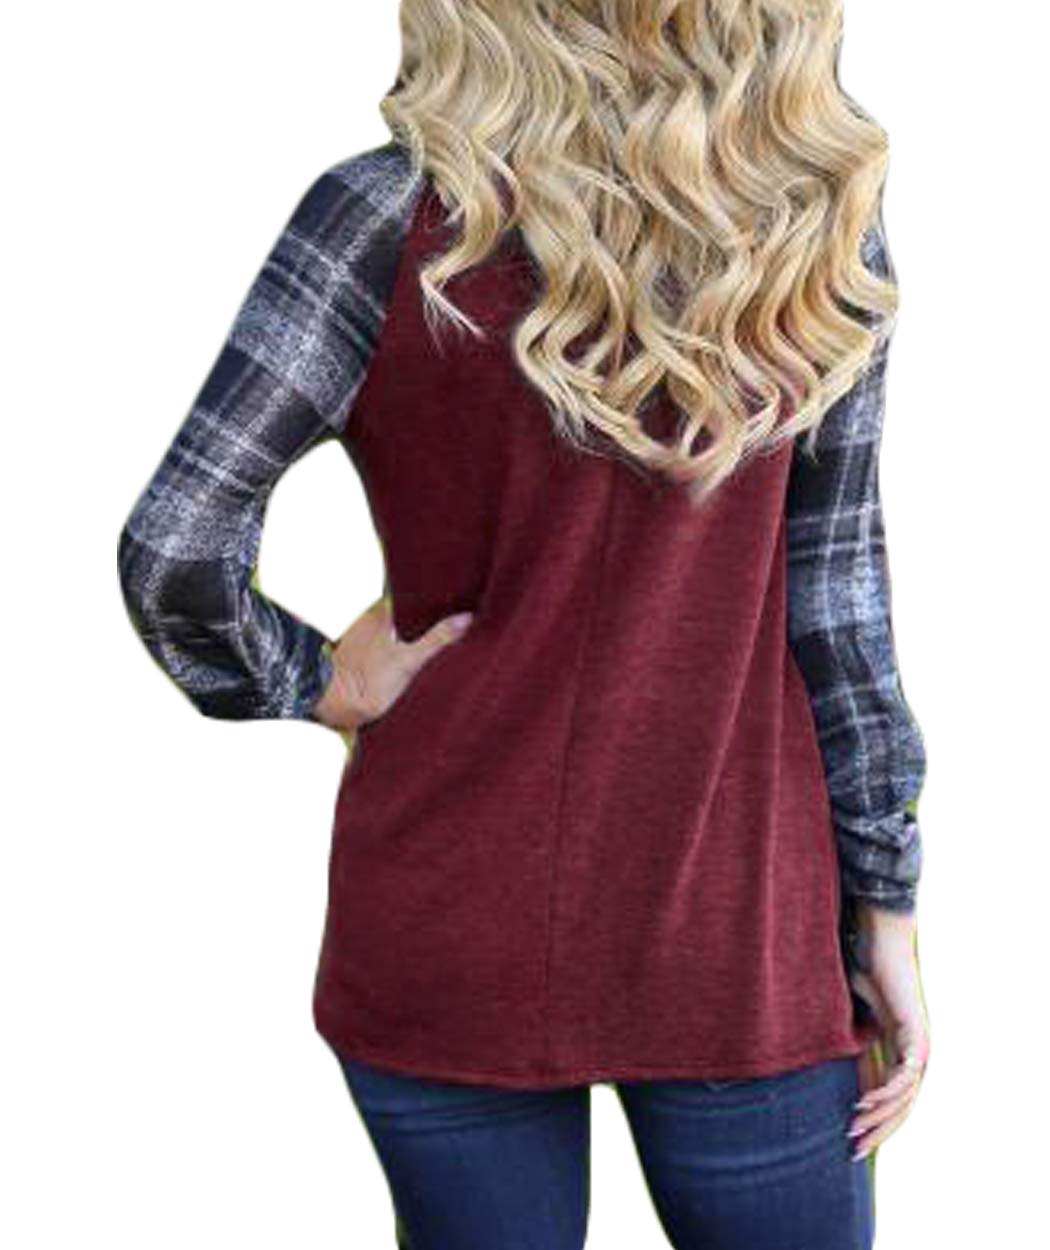 Eanklosco Women Long Sleeve Tops Plaid Patchwork Shirt Casual Round Neck Color Block Tunic Blouse (L, Wine Red)